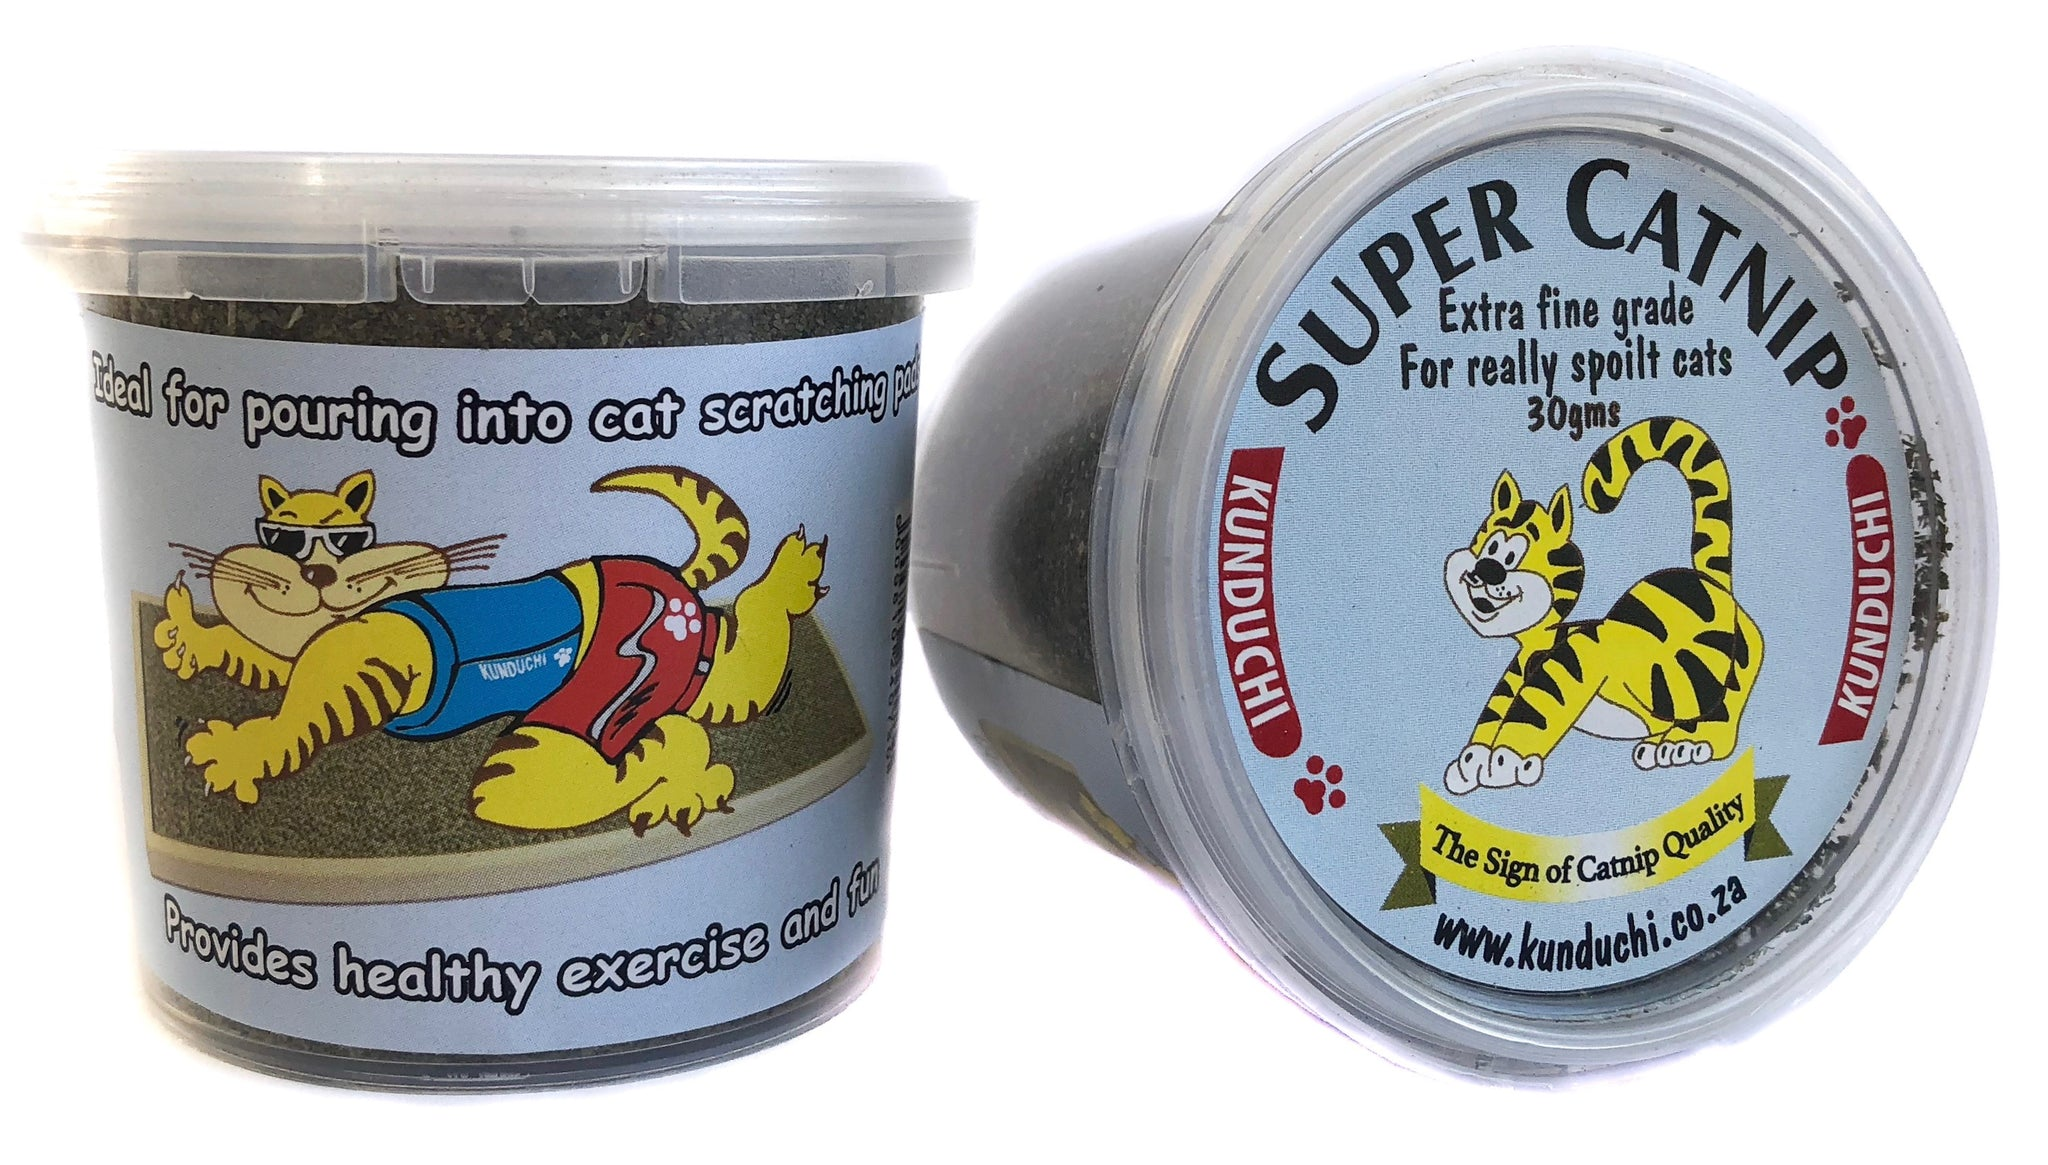 Kunduchi - Super Catnip Powder Tubs - Fine 30gms